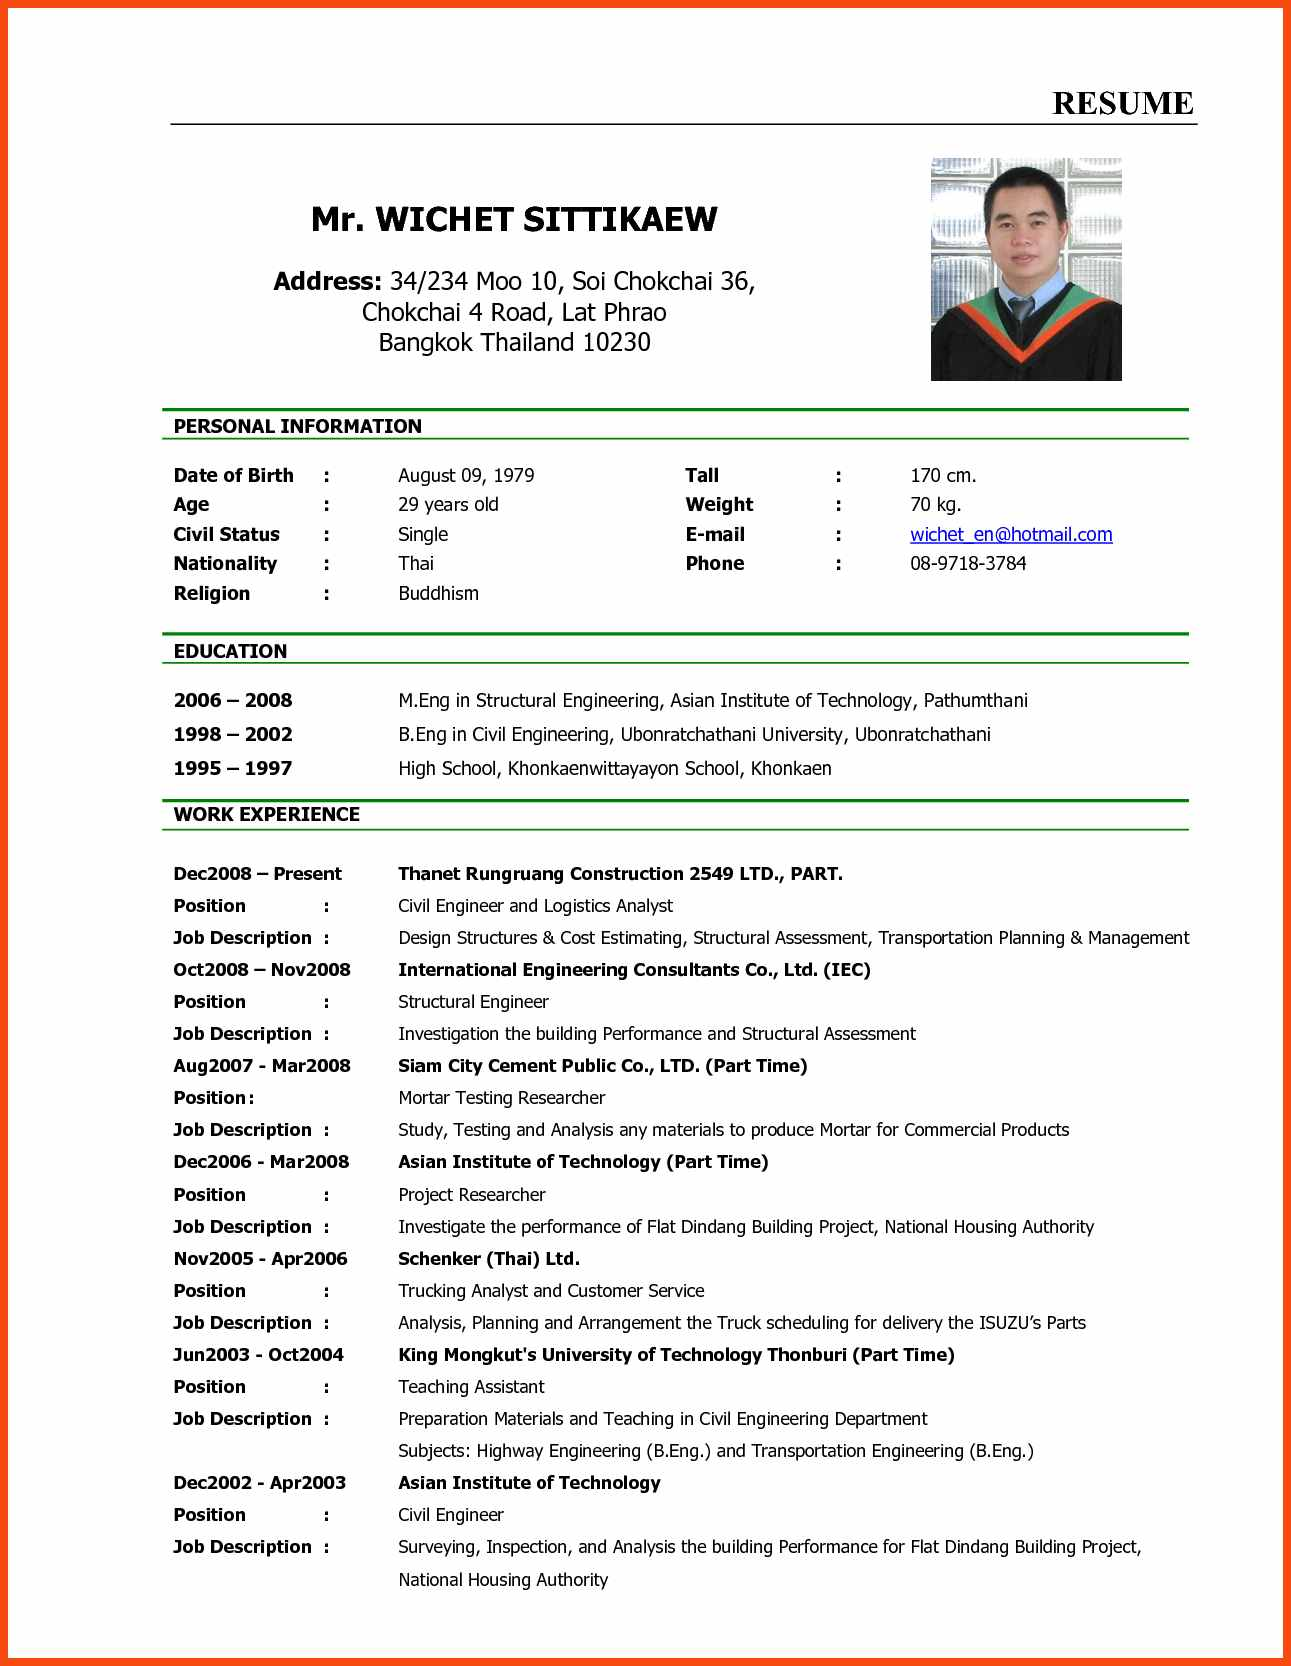 example of a curriculum vitae for job application